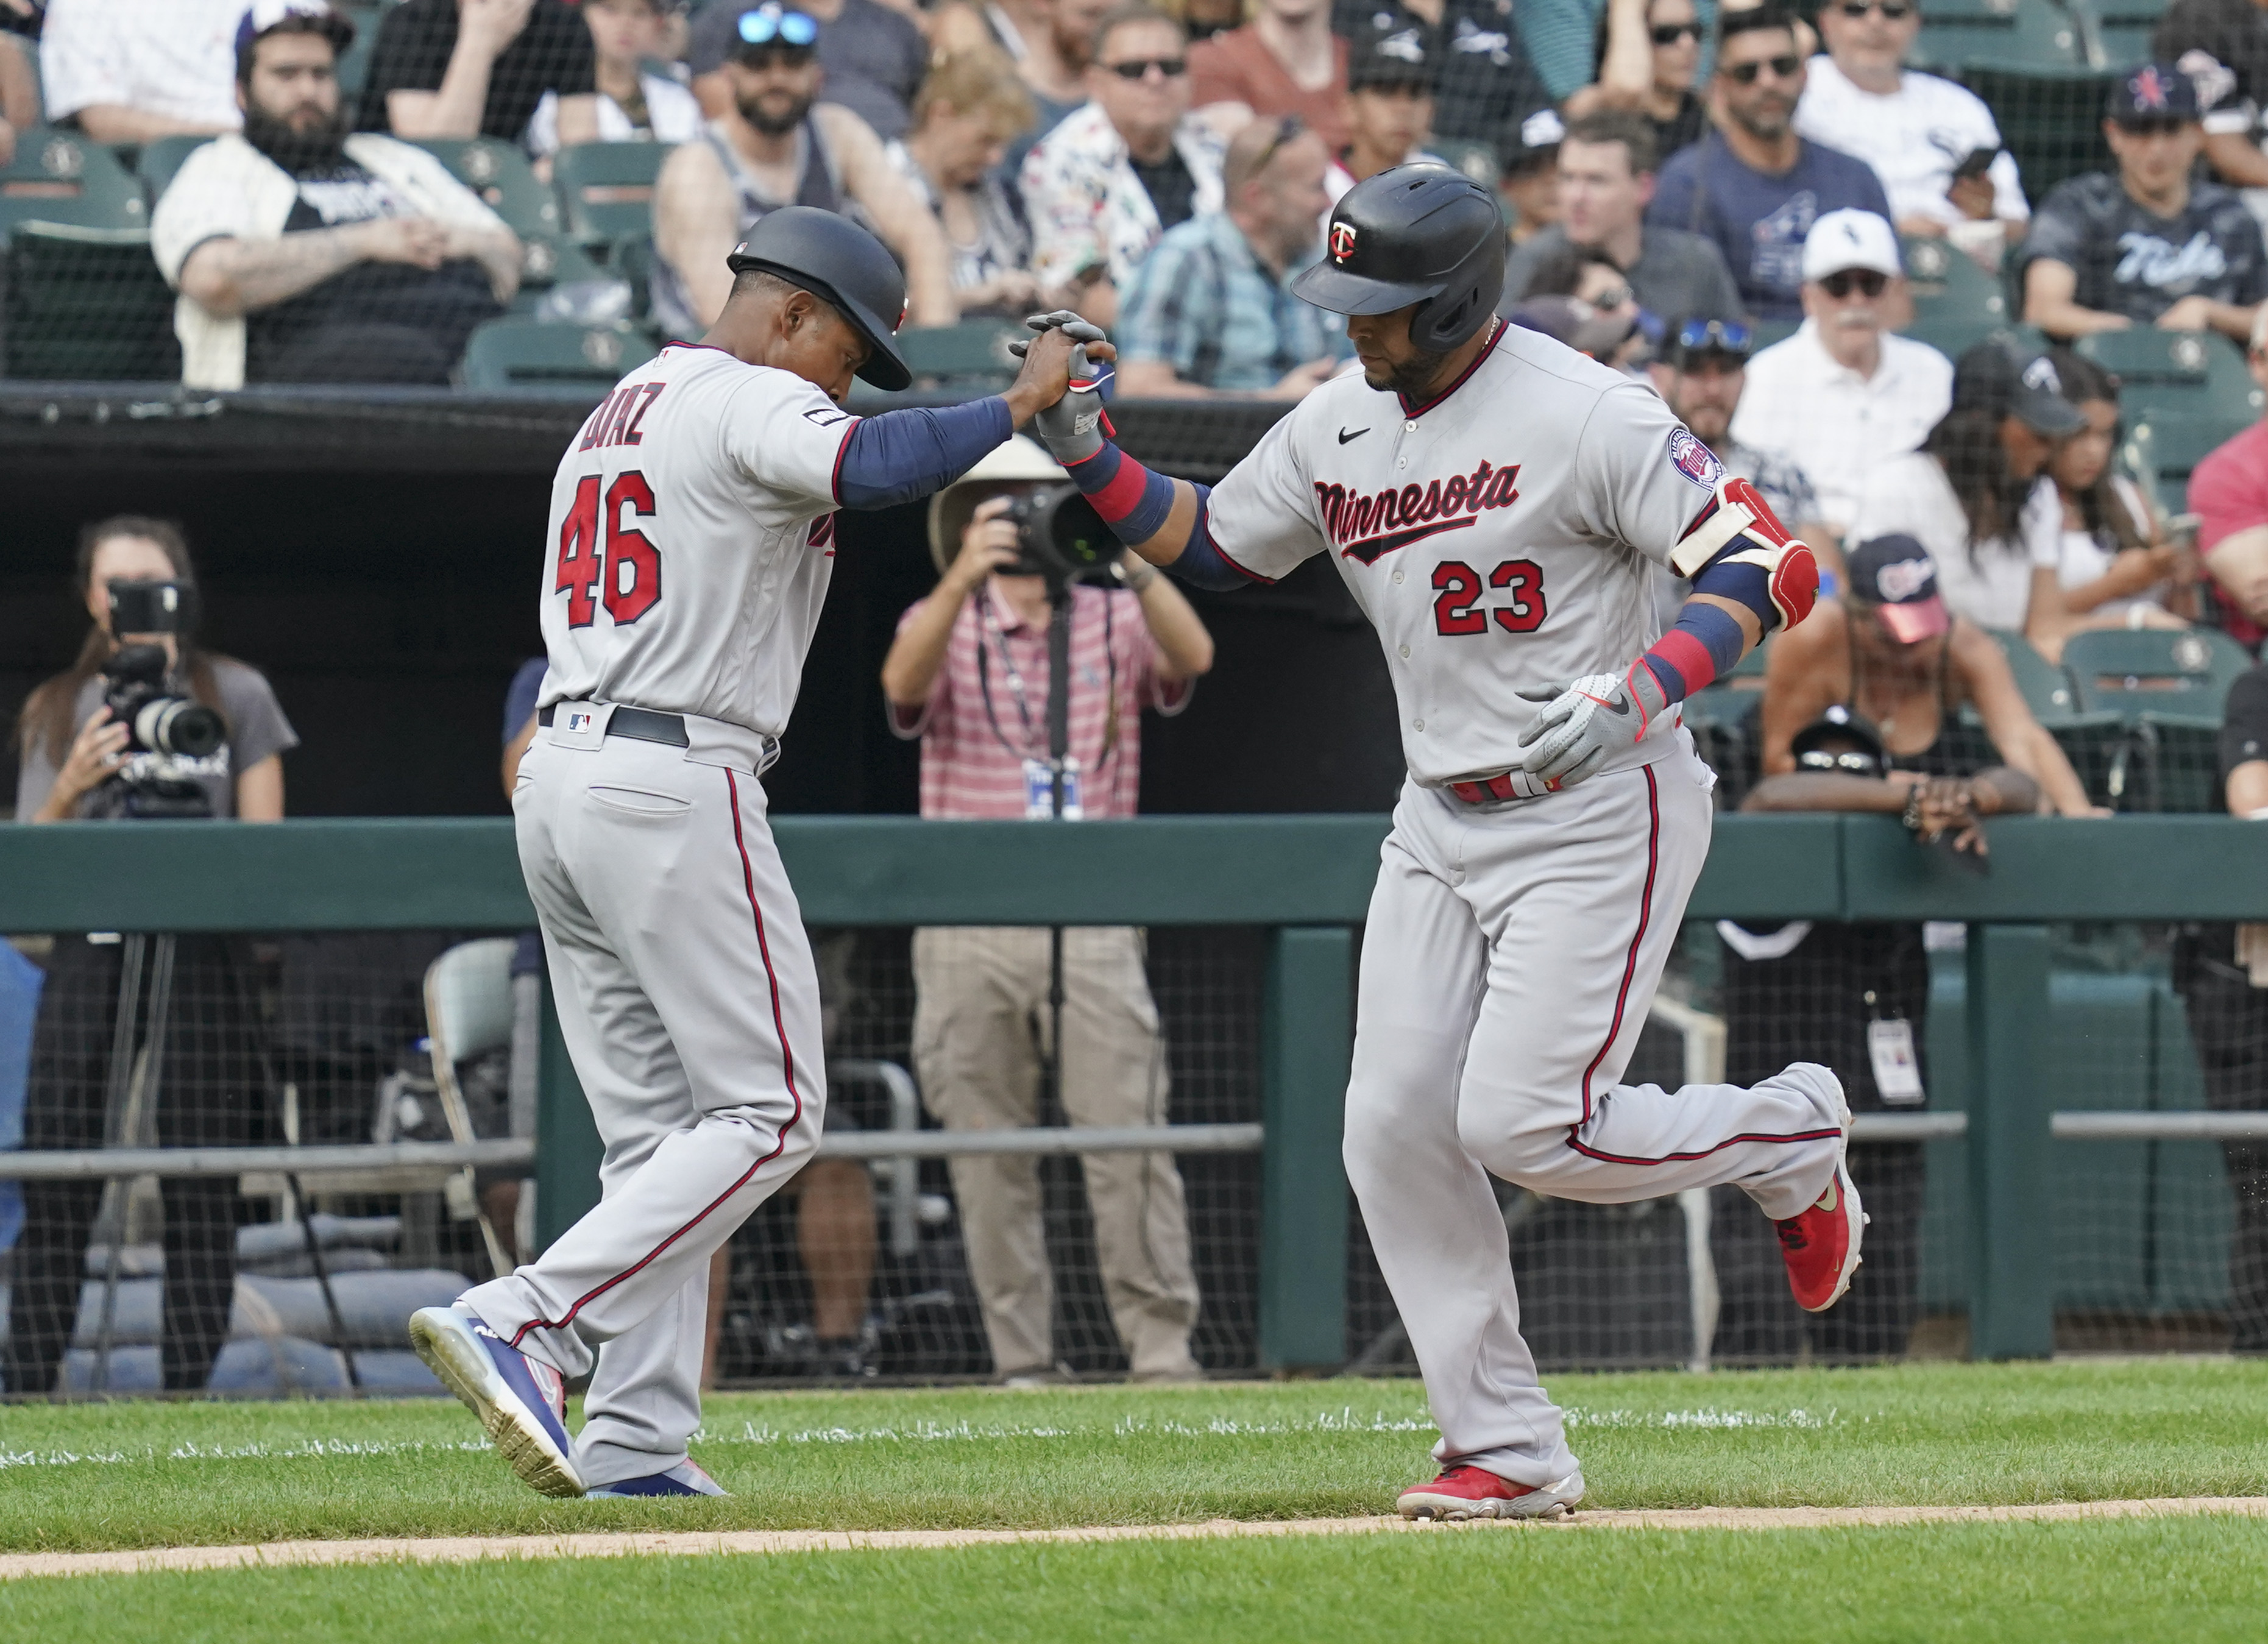 Nelson Cruz #23 of the Minnesota Twins is congratulated by third base coach Tony Diaz #46 of the Minnesota Twins following his home run against the Chicago White Sox at Guaranteed Rate Field on July 19, 2021 in Chicago, Illinois.